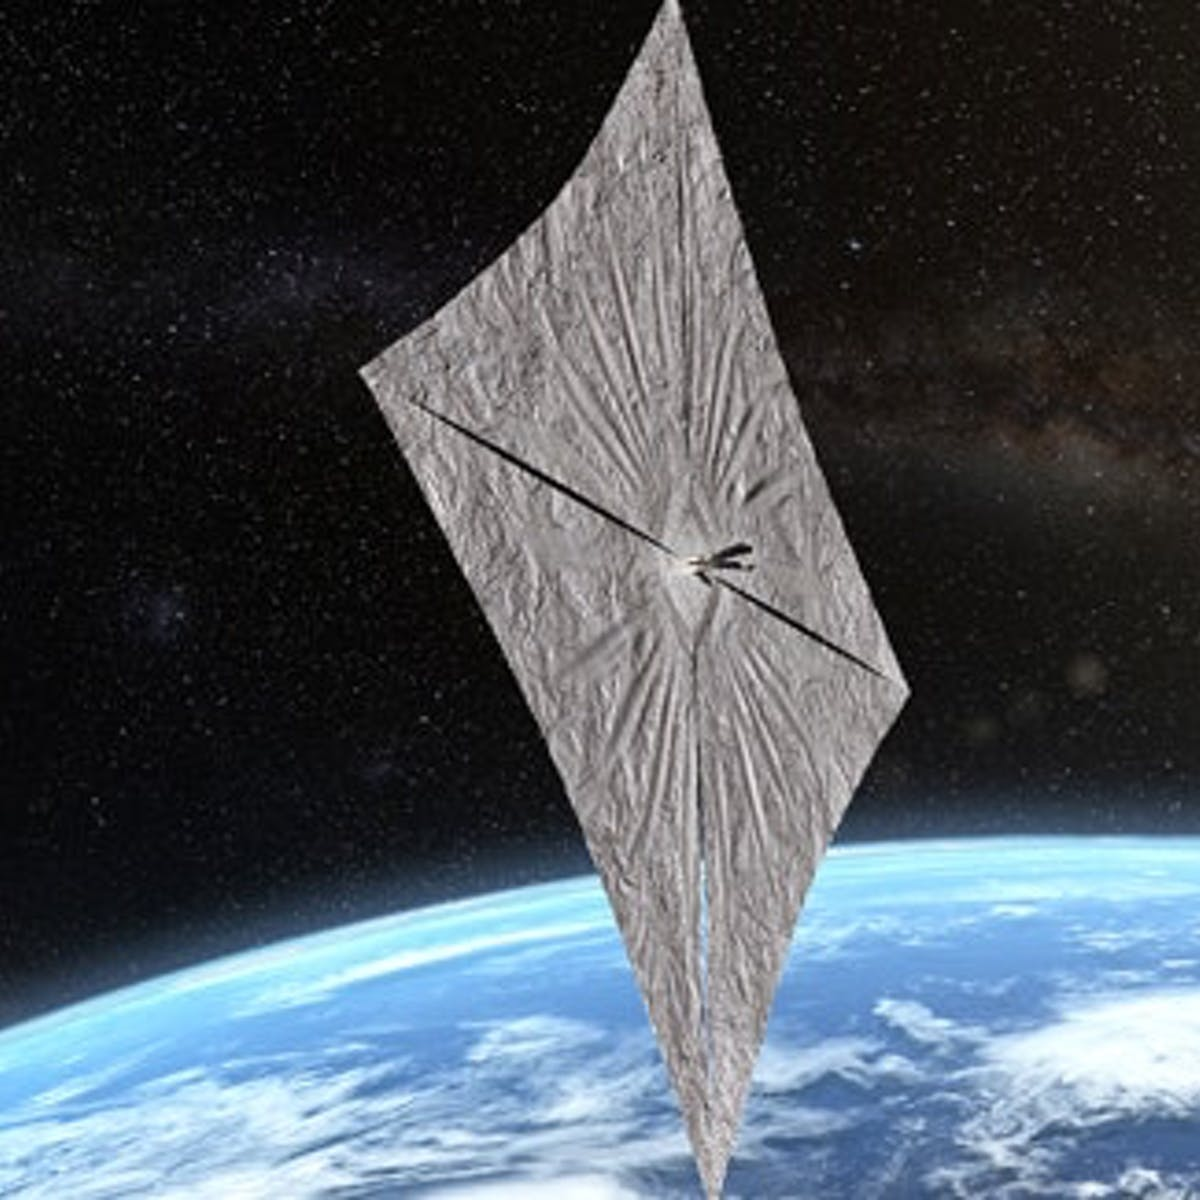 Inverse Daily: LightSail 2 Is a Resounding Success